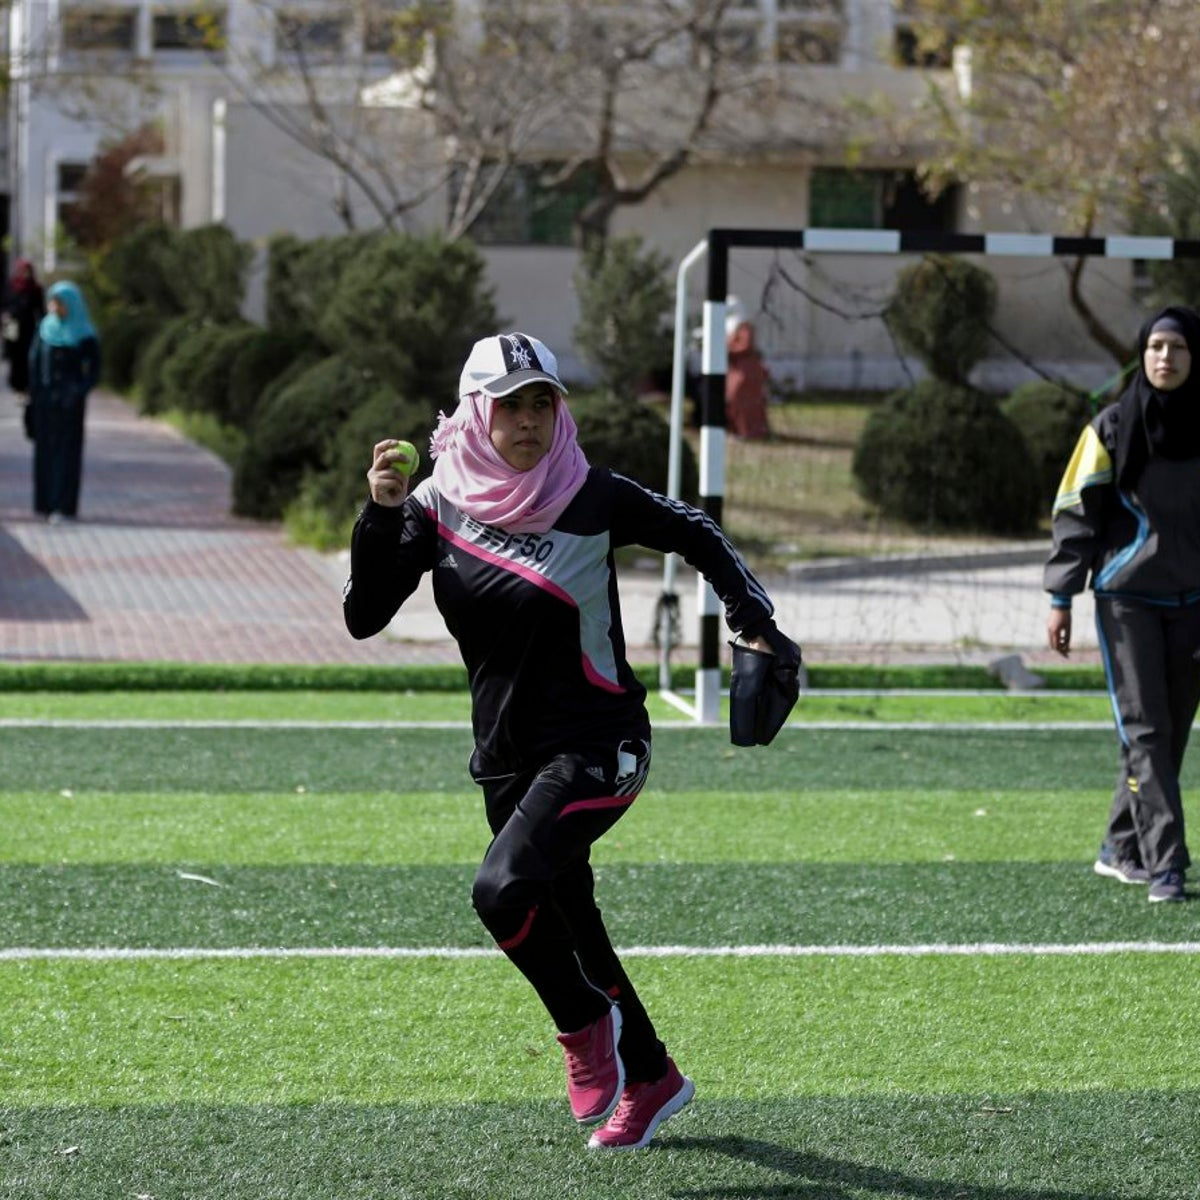 In this Sunday, March 19, 2017 photo, Palestinian women train for an all women's baseball game, on a soccer field, in Khan Younis, southern Gaza Strip. The female players wear hijabs, not helmets, toss around tennis balls, not baseballs and their leather gloves have been replaced by black imitations knitted from fabric. The group of young women are trying to bring baseball to Gaza -- giving the traditional American pastime a distinctly local feel.